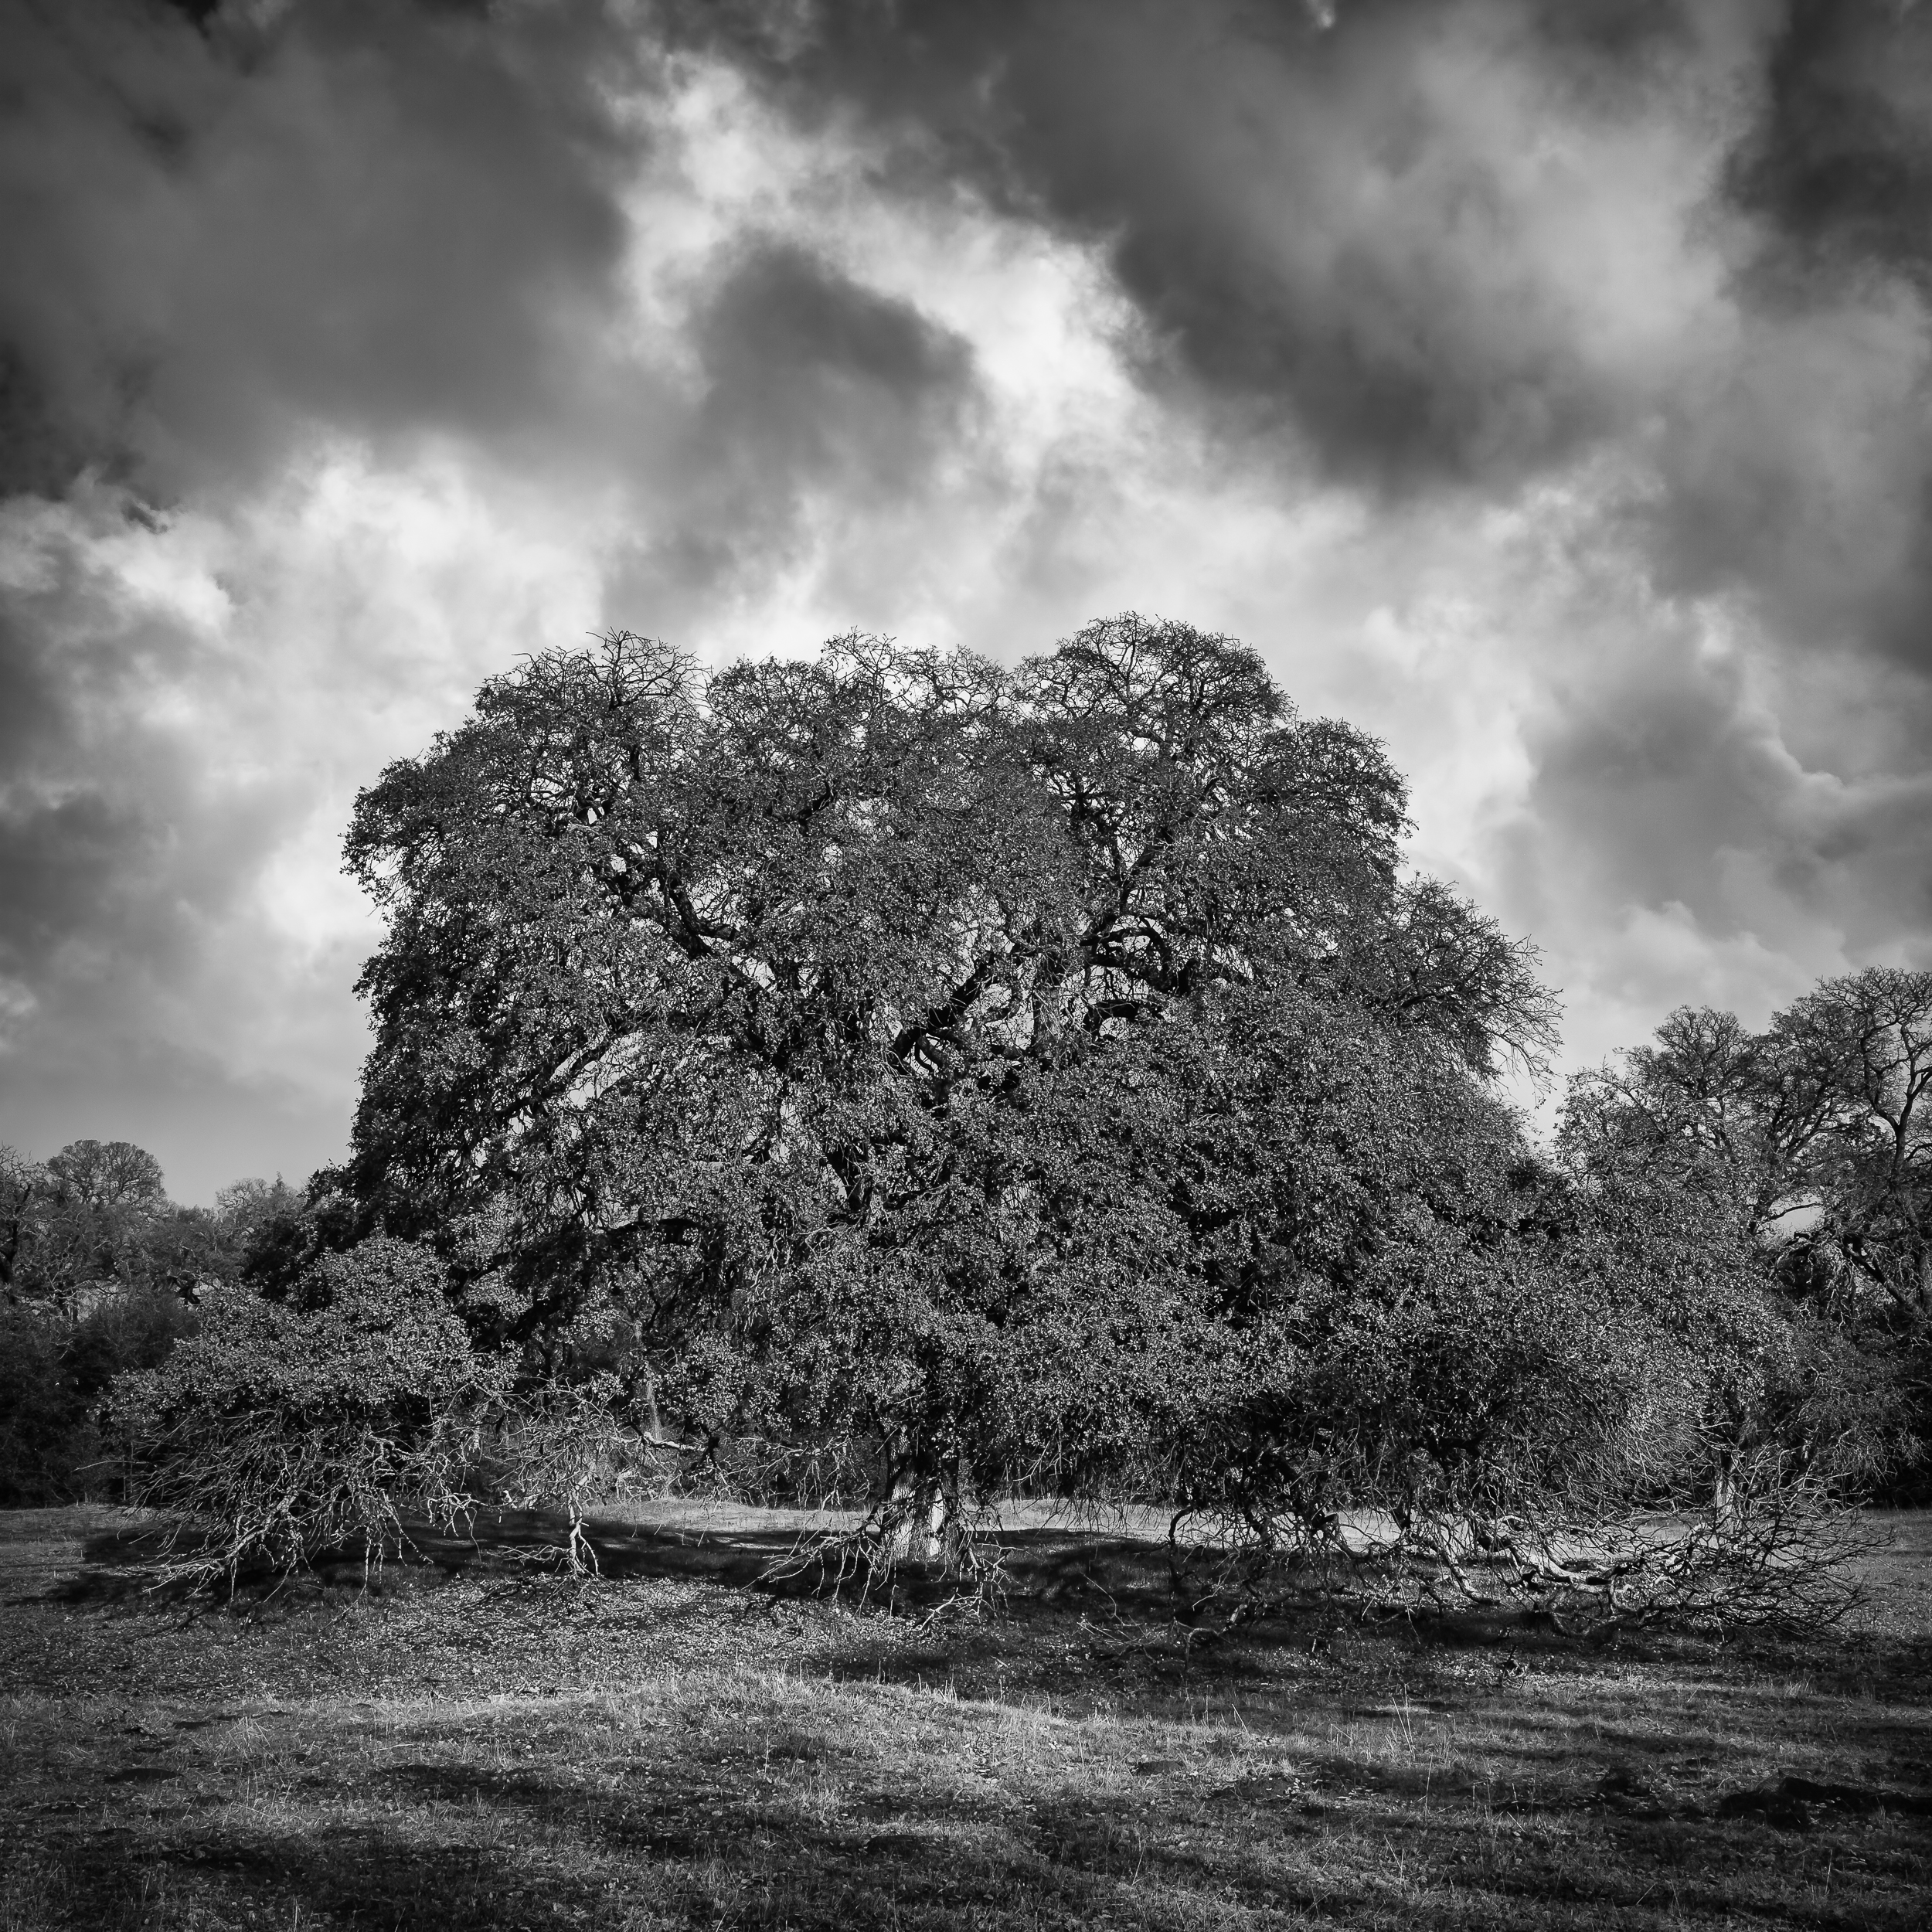 Oak Tree with Storm Clouds